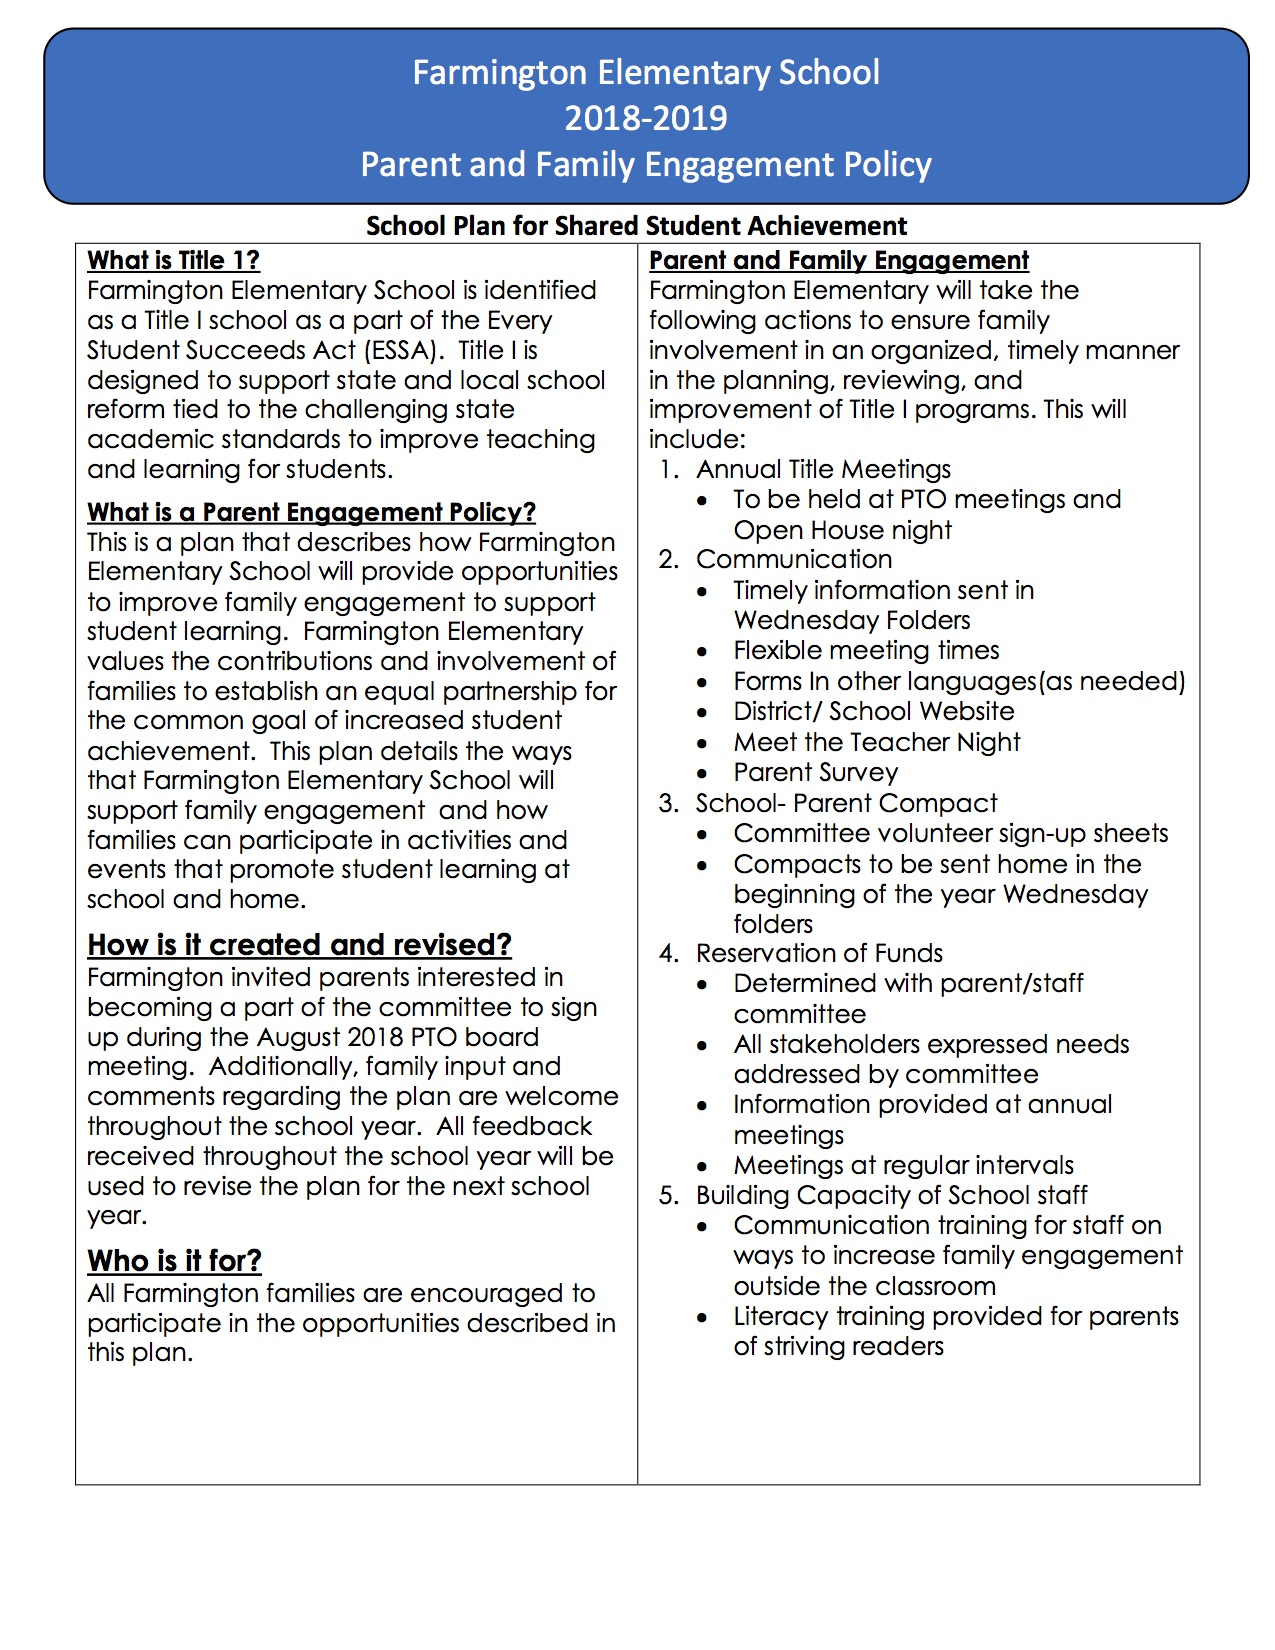 Image of FES Parent Engagement Policy